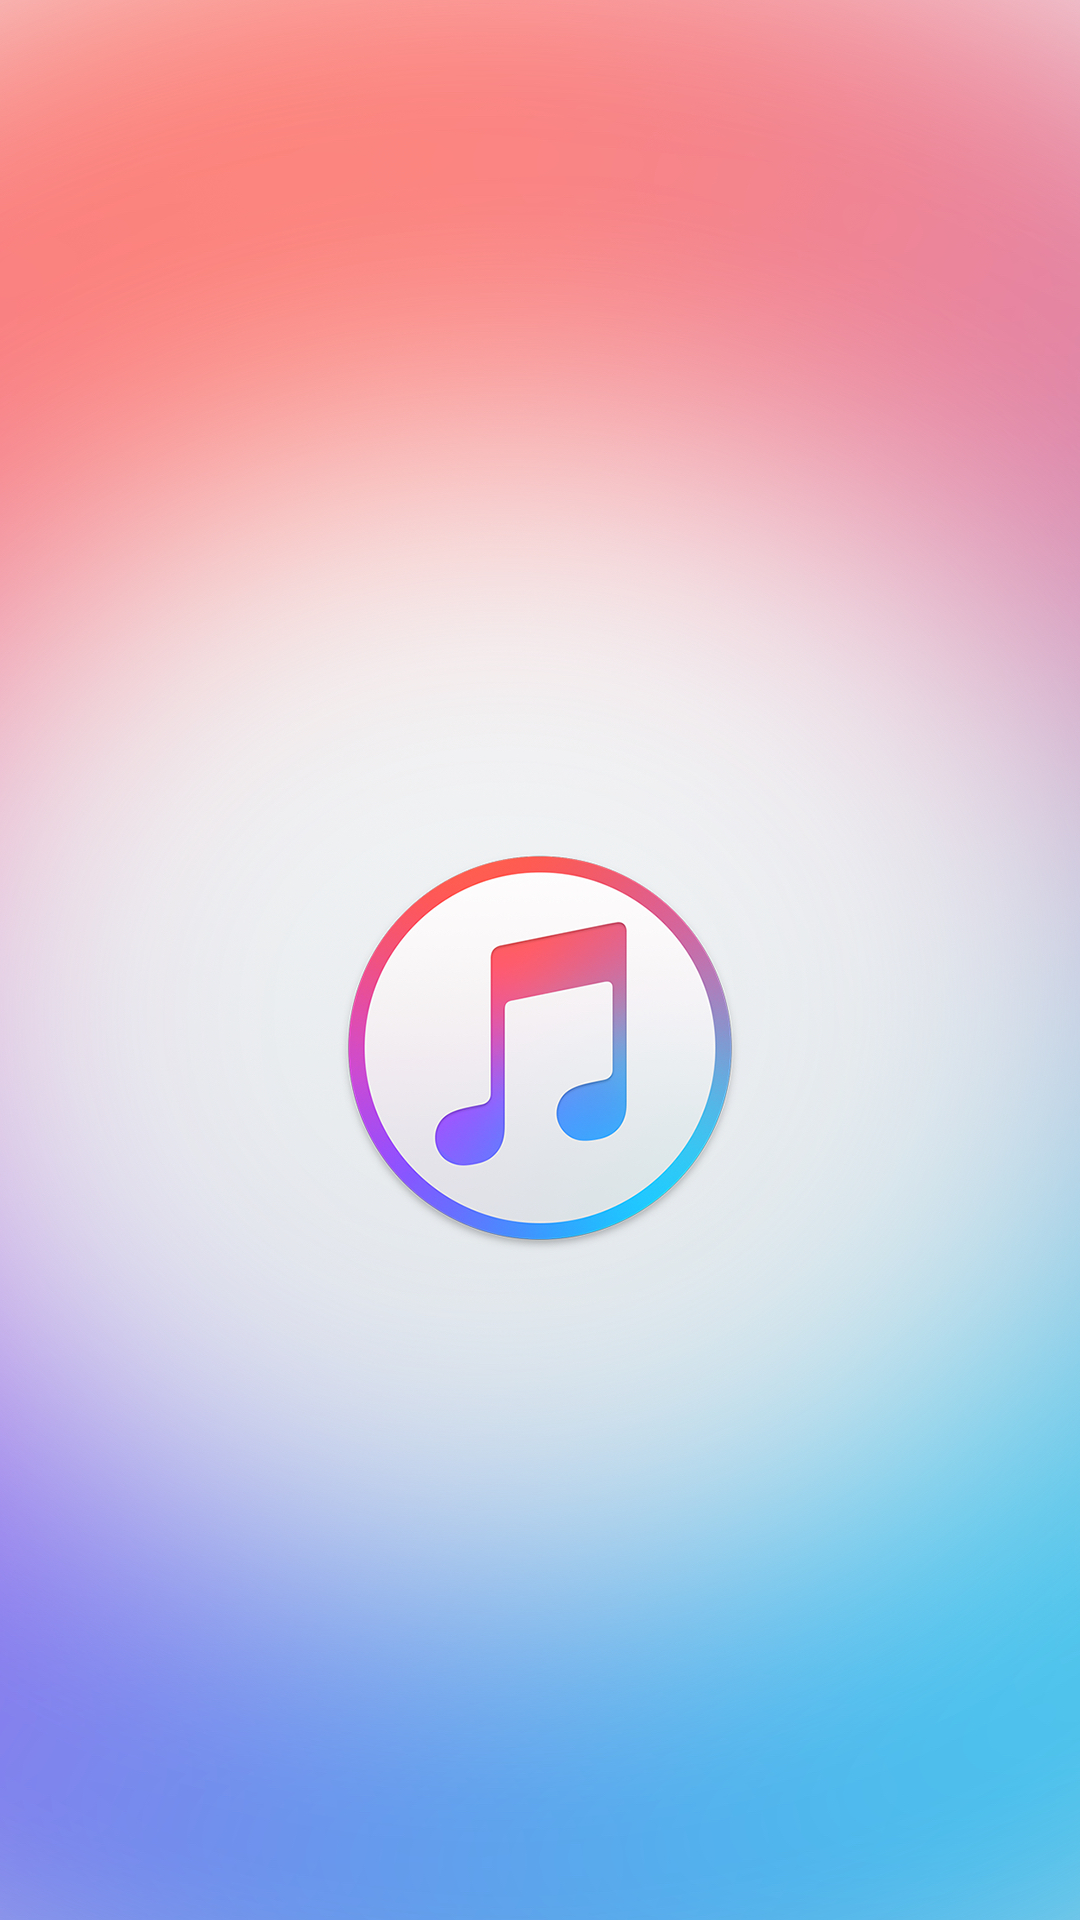 Where To Download Music For Iphone